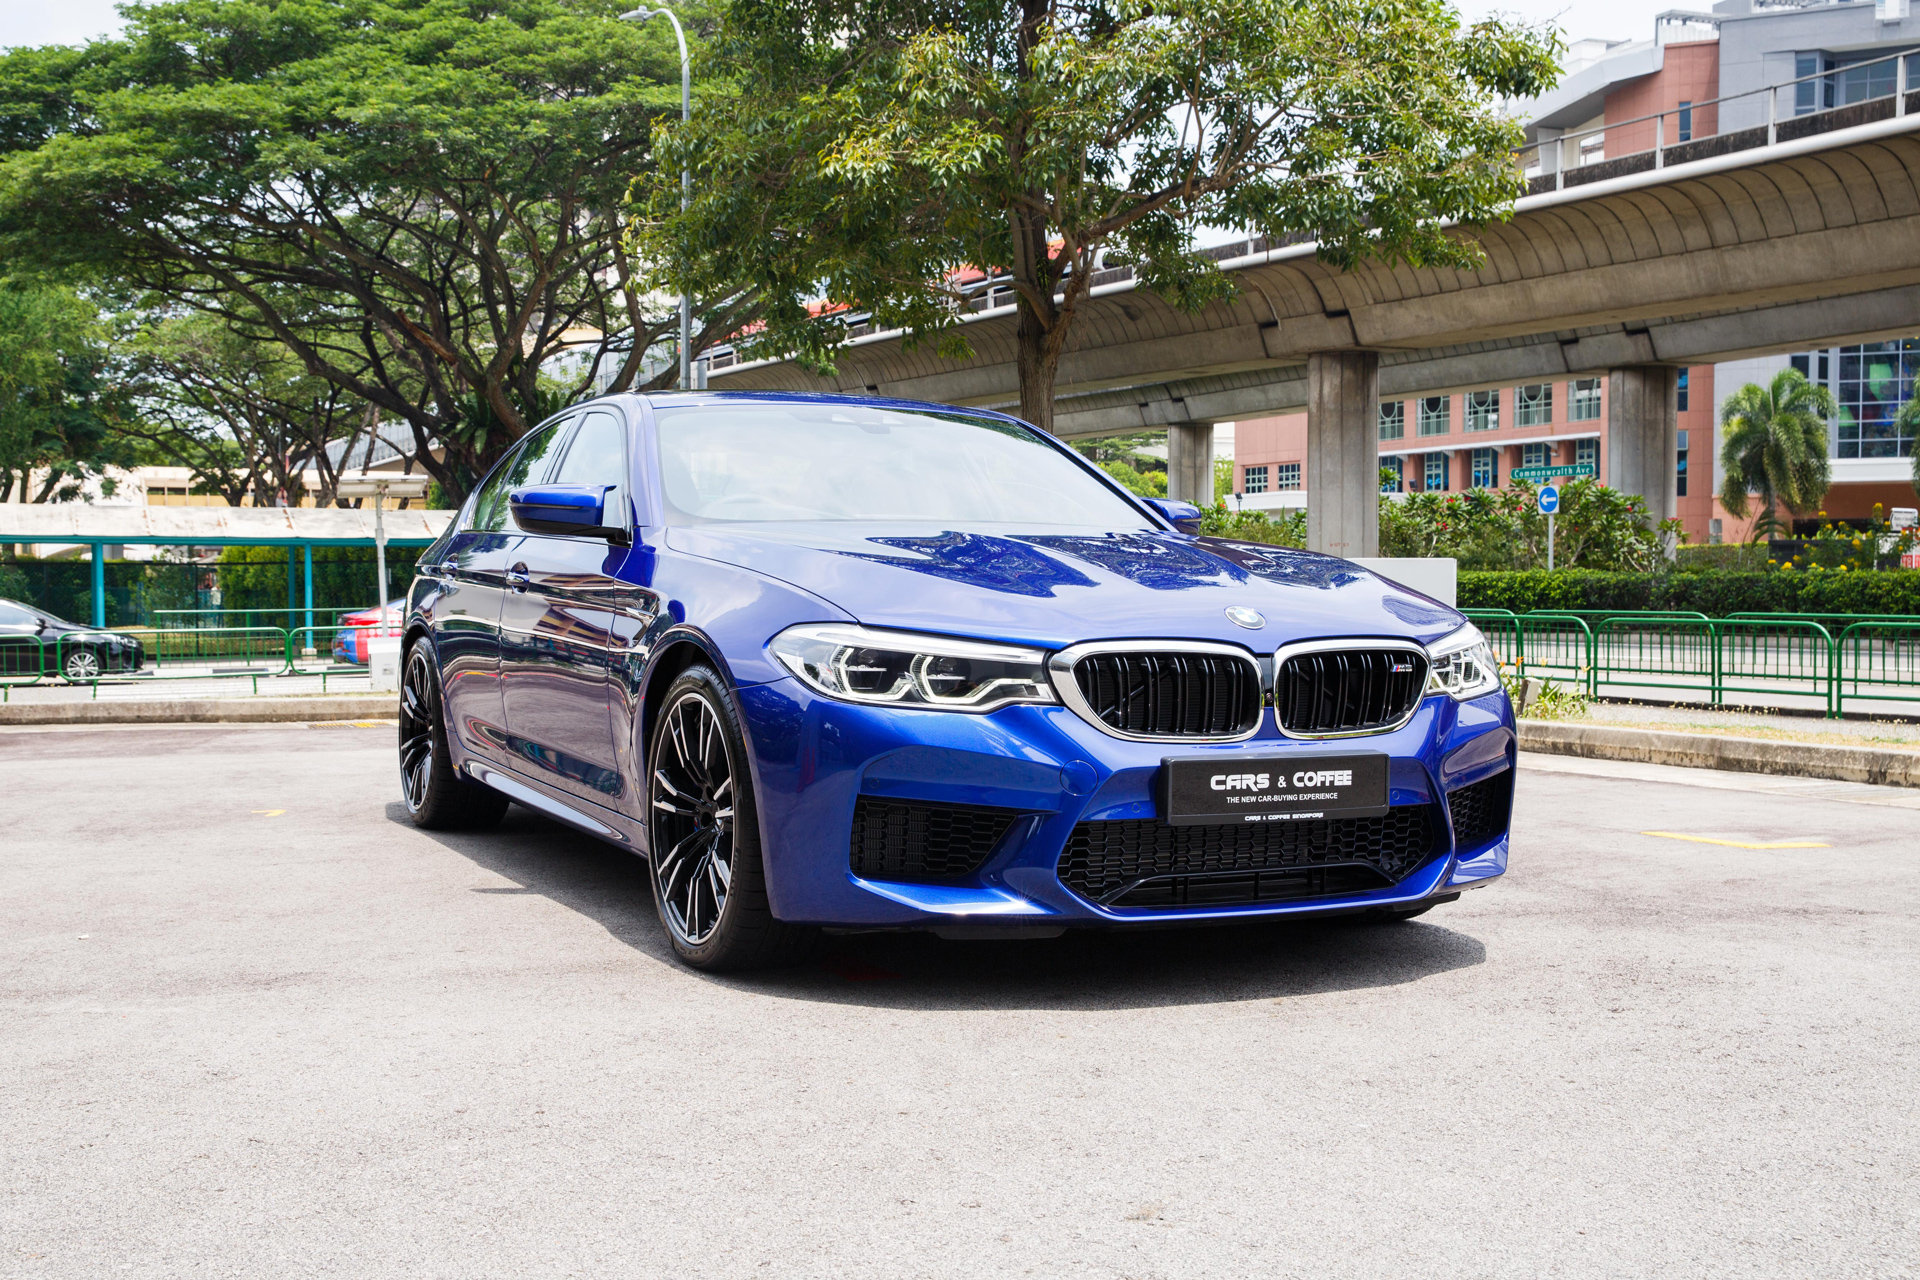 Certified Pre-Owned BMW M5 | Cars and Coffee Singapore